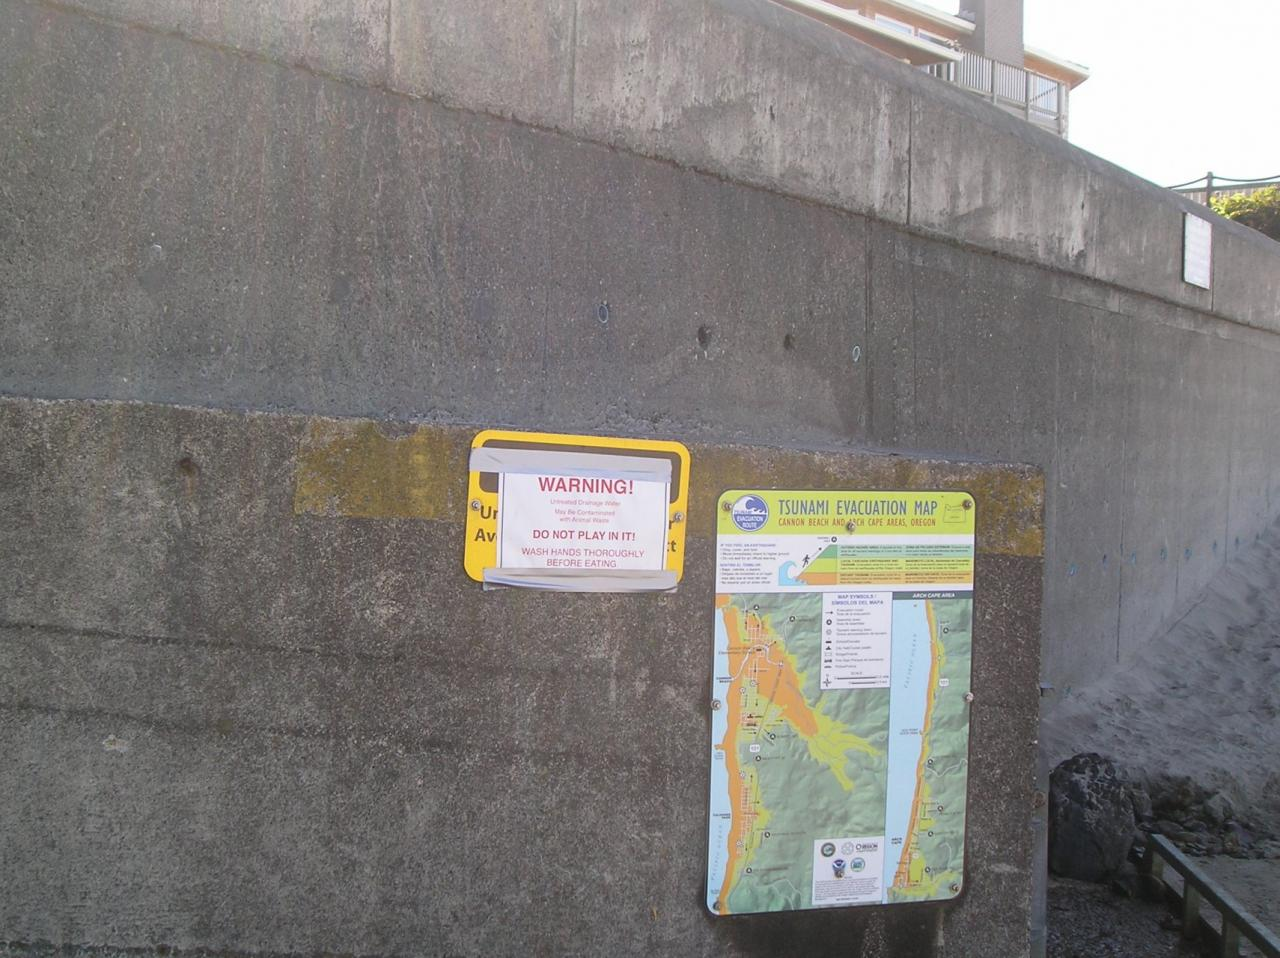 sign reads: Warninguntreated drainage watermay be contaminated with animal wastedo not play in itwash hands thoroughly before eating